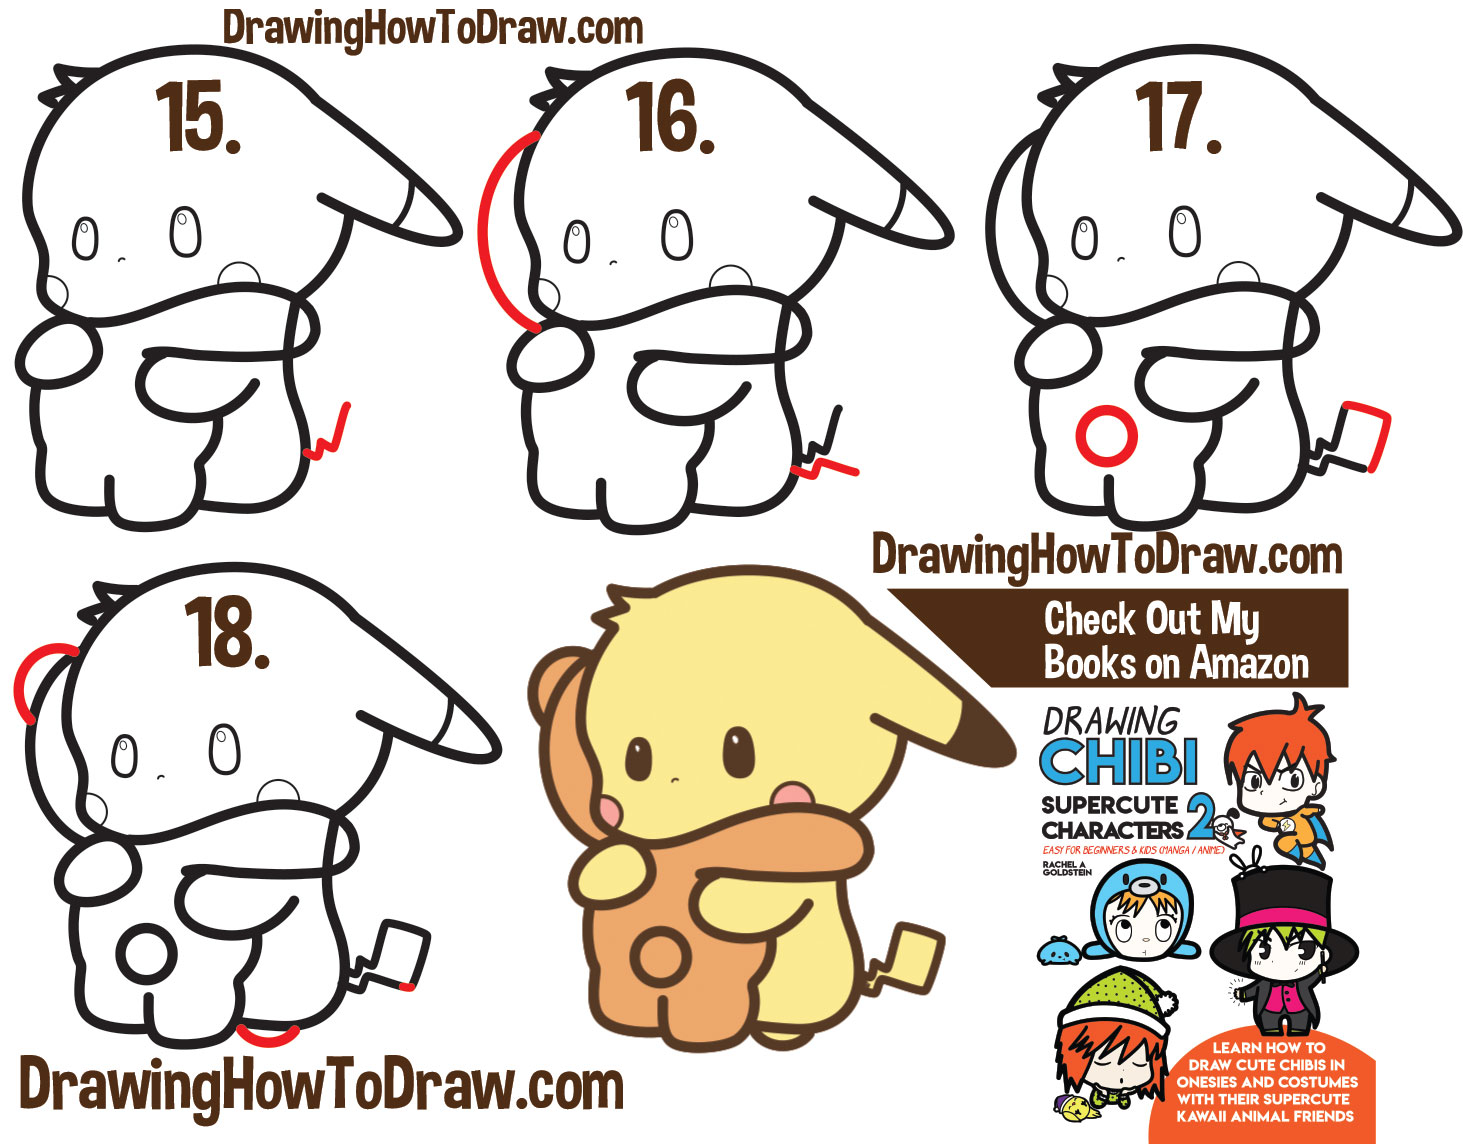 How to Draw a Cute Kawaii Pikachu and Teddiursa (Pokemon) Hugging Simple Steps Drawing Lesson for Kids